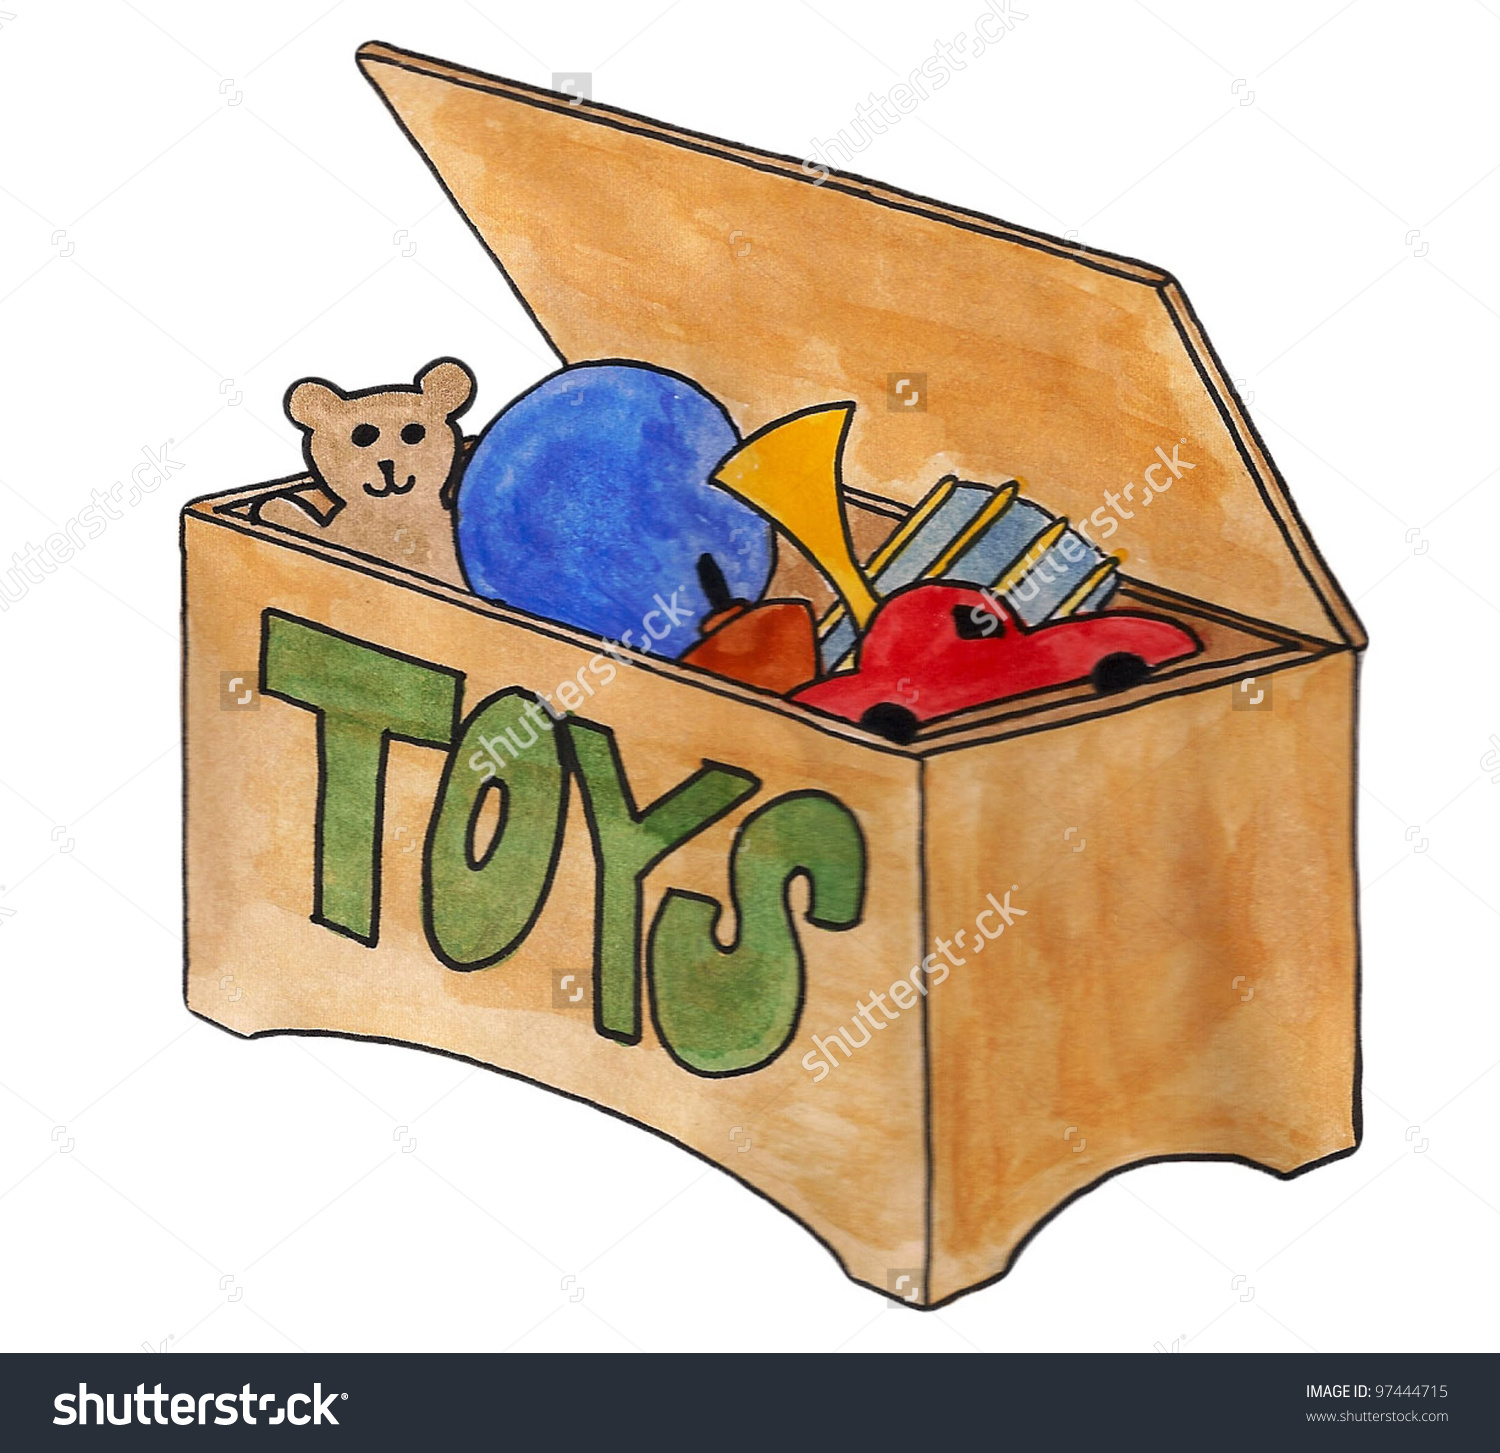 Toy clipart toy box #5